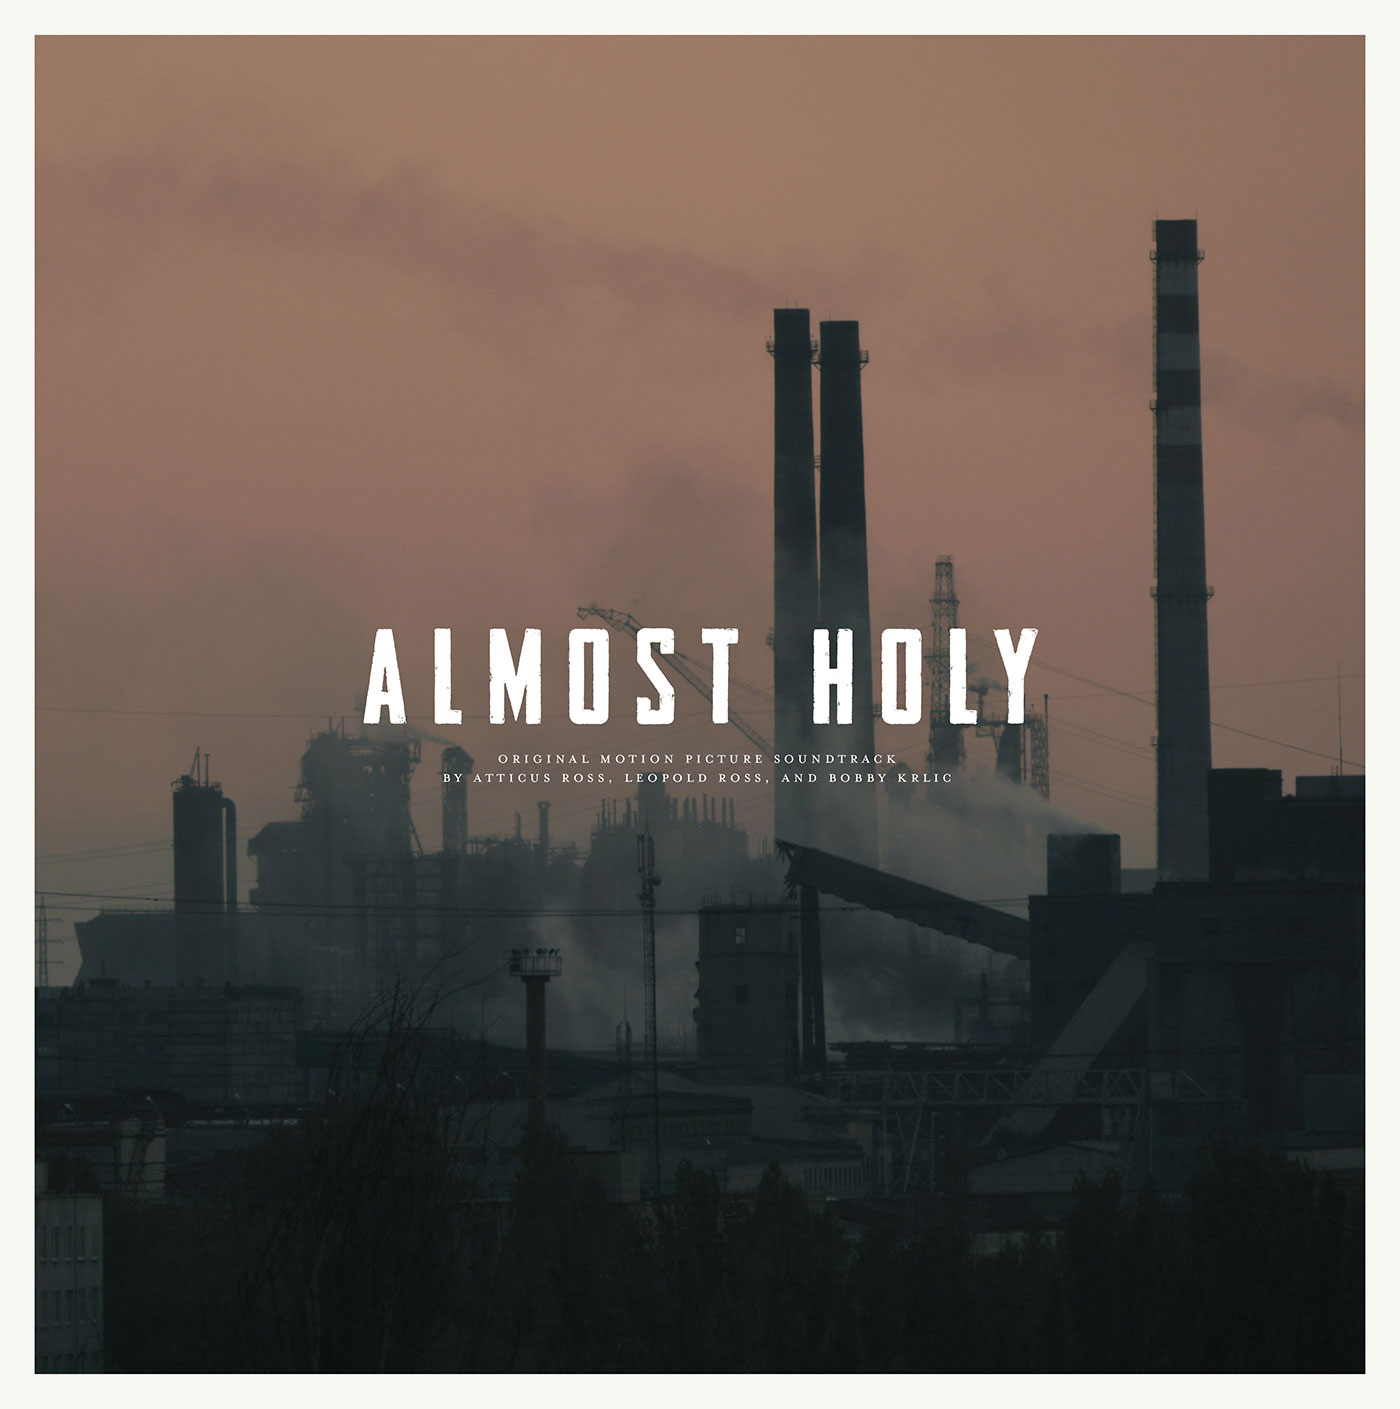 Almost Holy: Atticus Ross, Leopold Ross, and Bobby Krlic